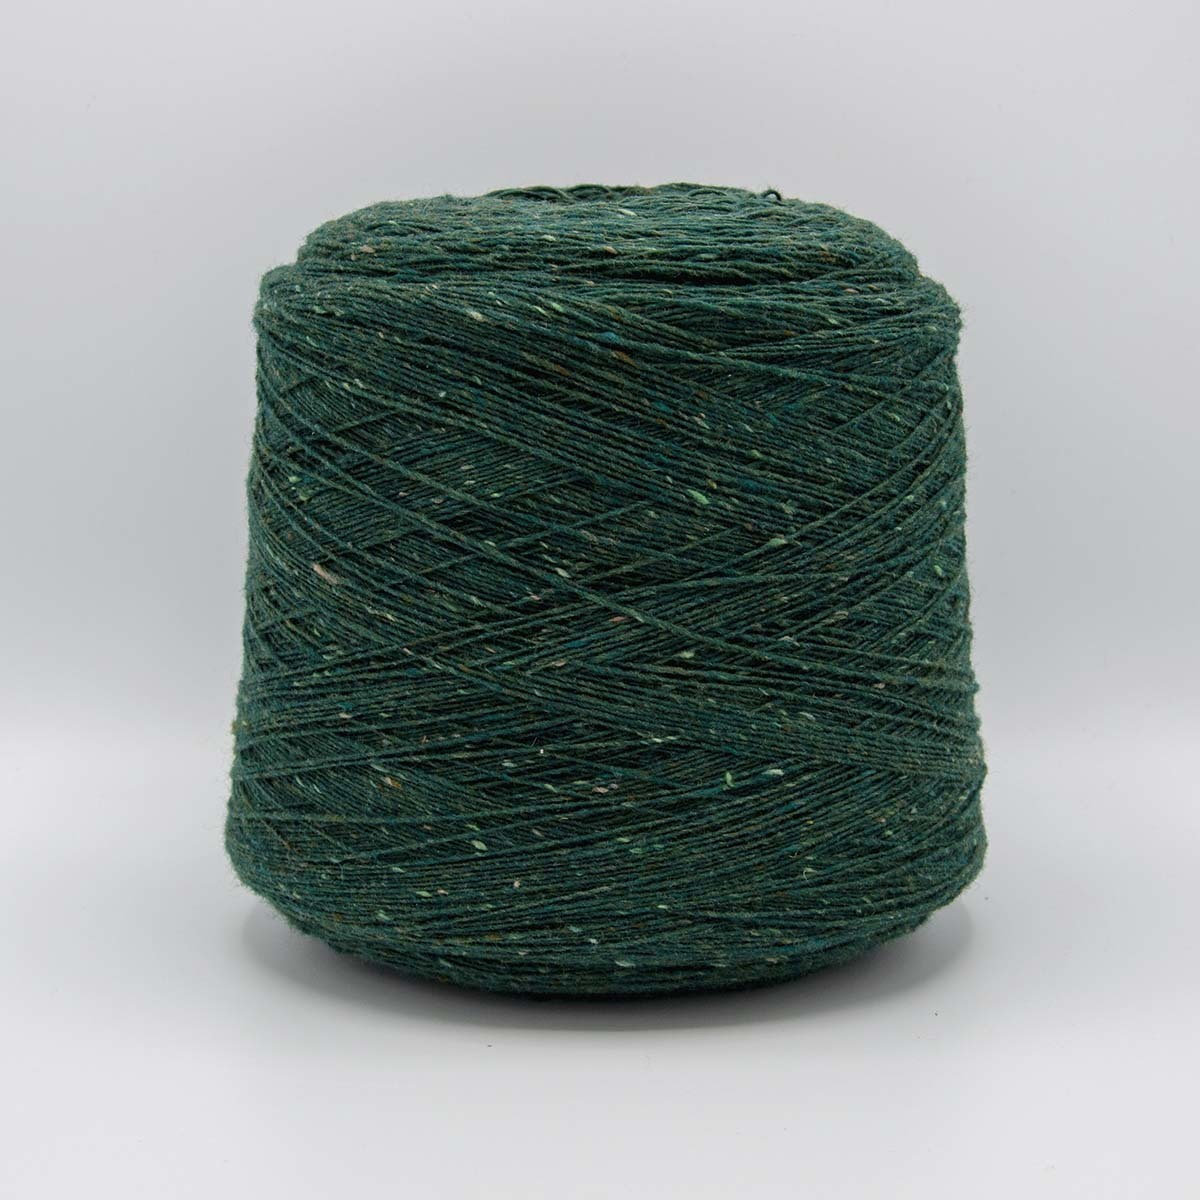 Knoll Yarns Soft Donegal (одинарный твид) - 5545